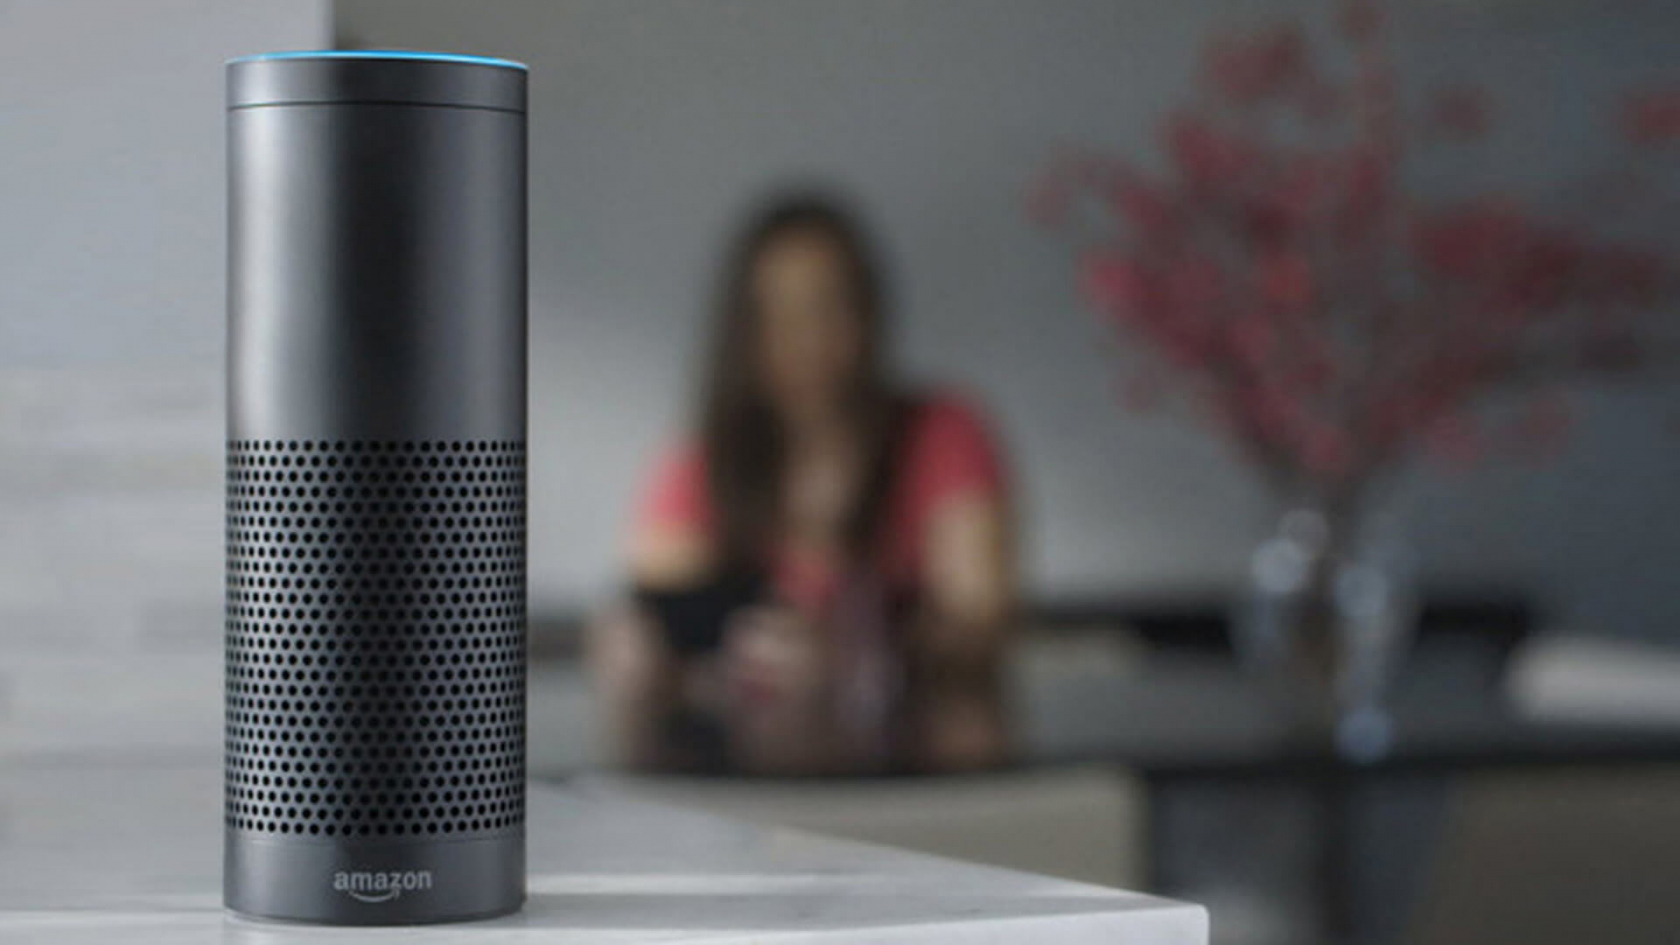 Amazon's Alexa and Echo Devices Were Popular on Christmas